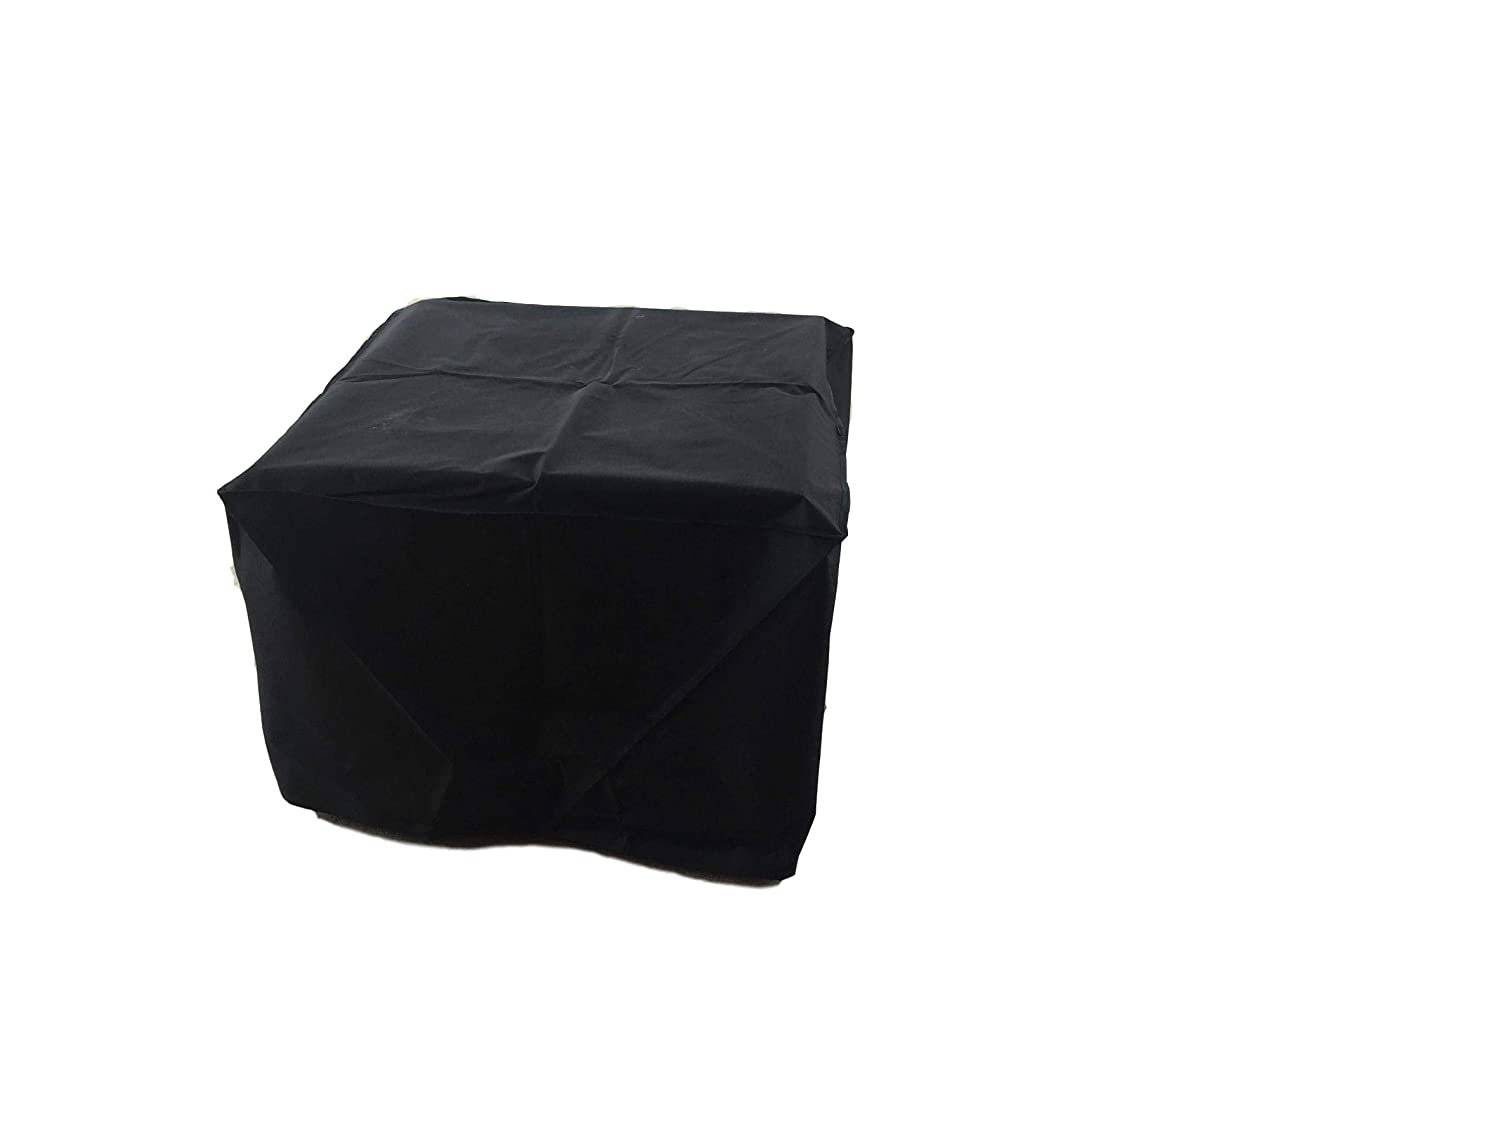 Outdoor Gas Firepit Cover 31 inches X 31 inches X 24 inches